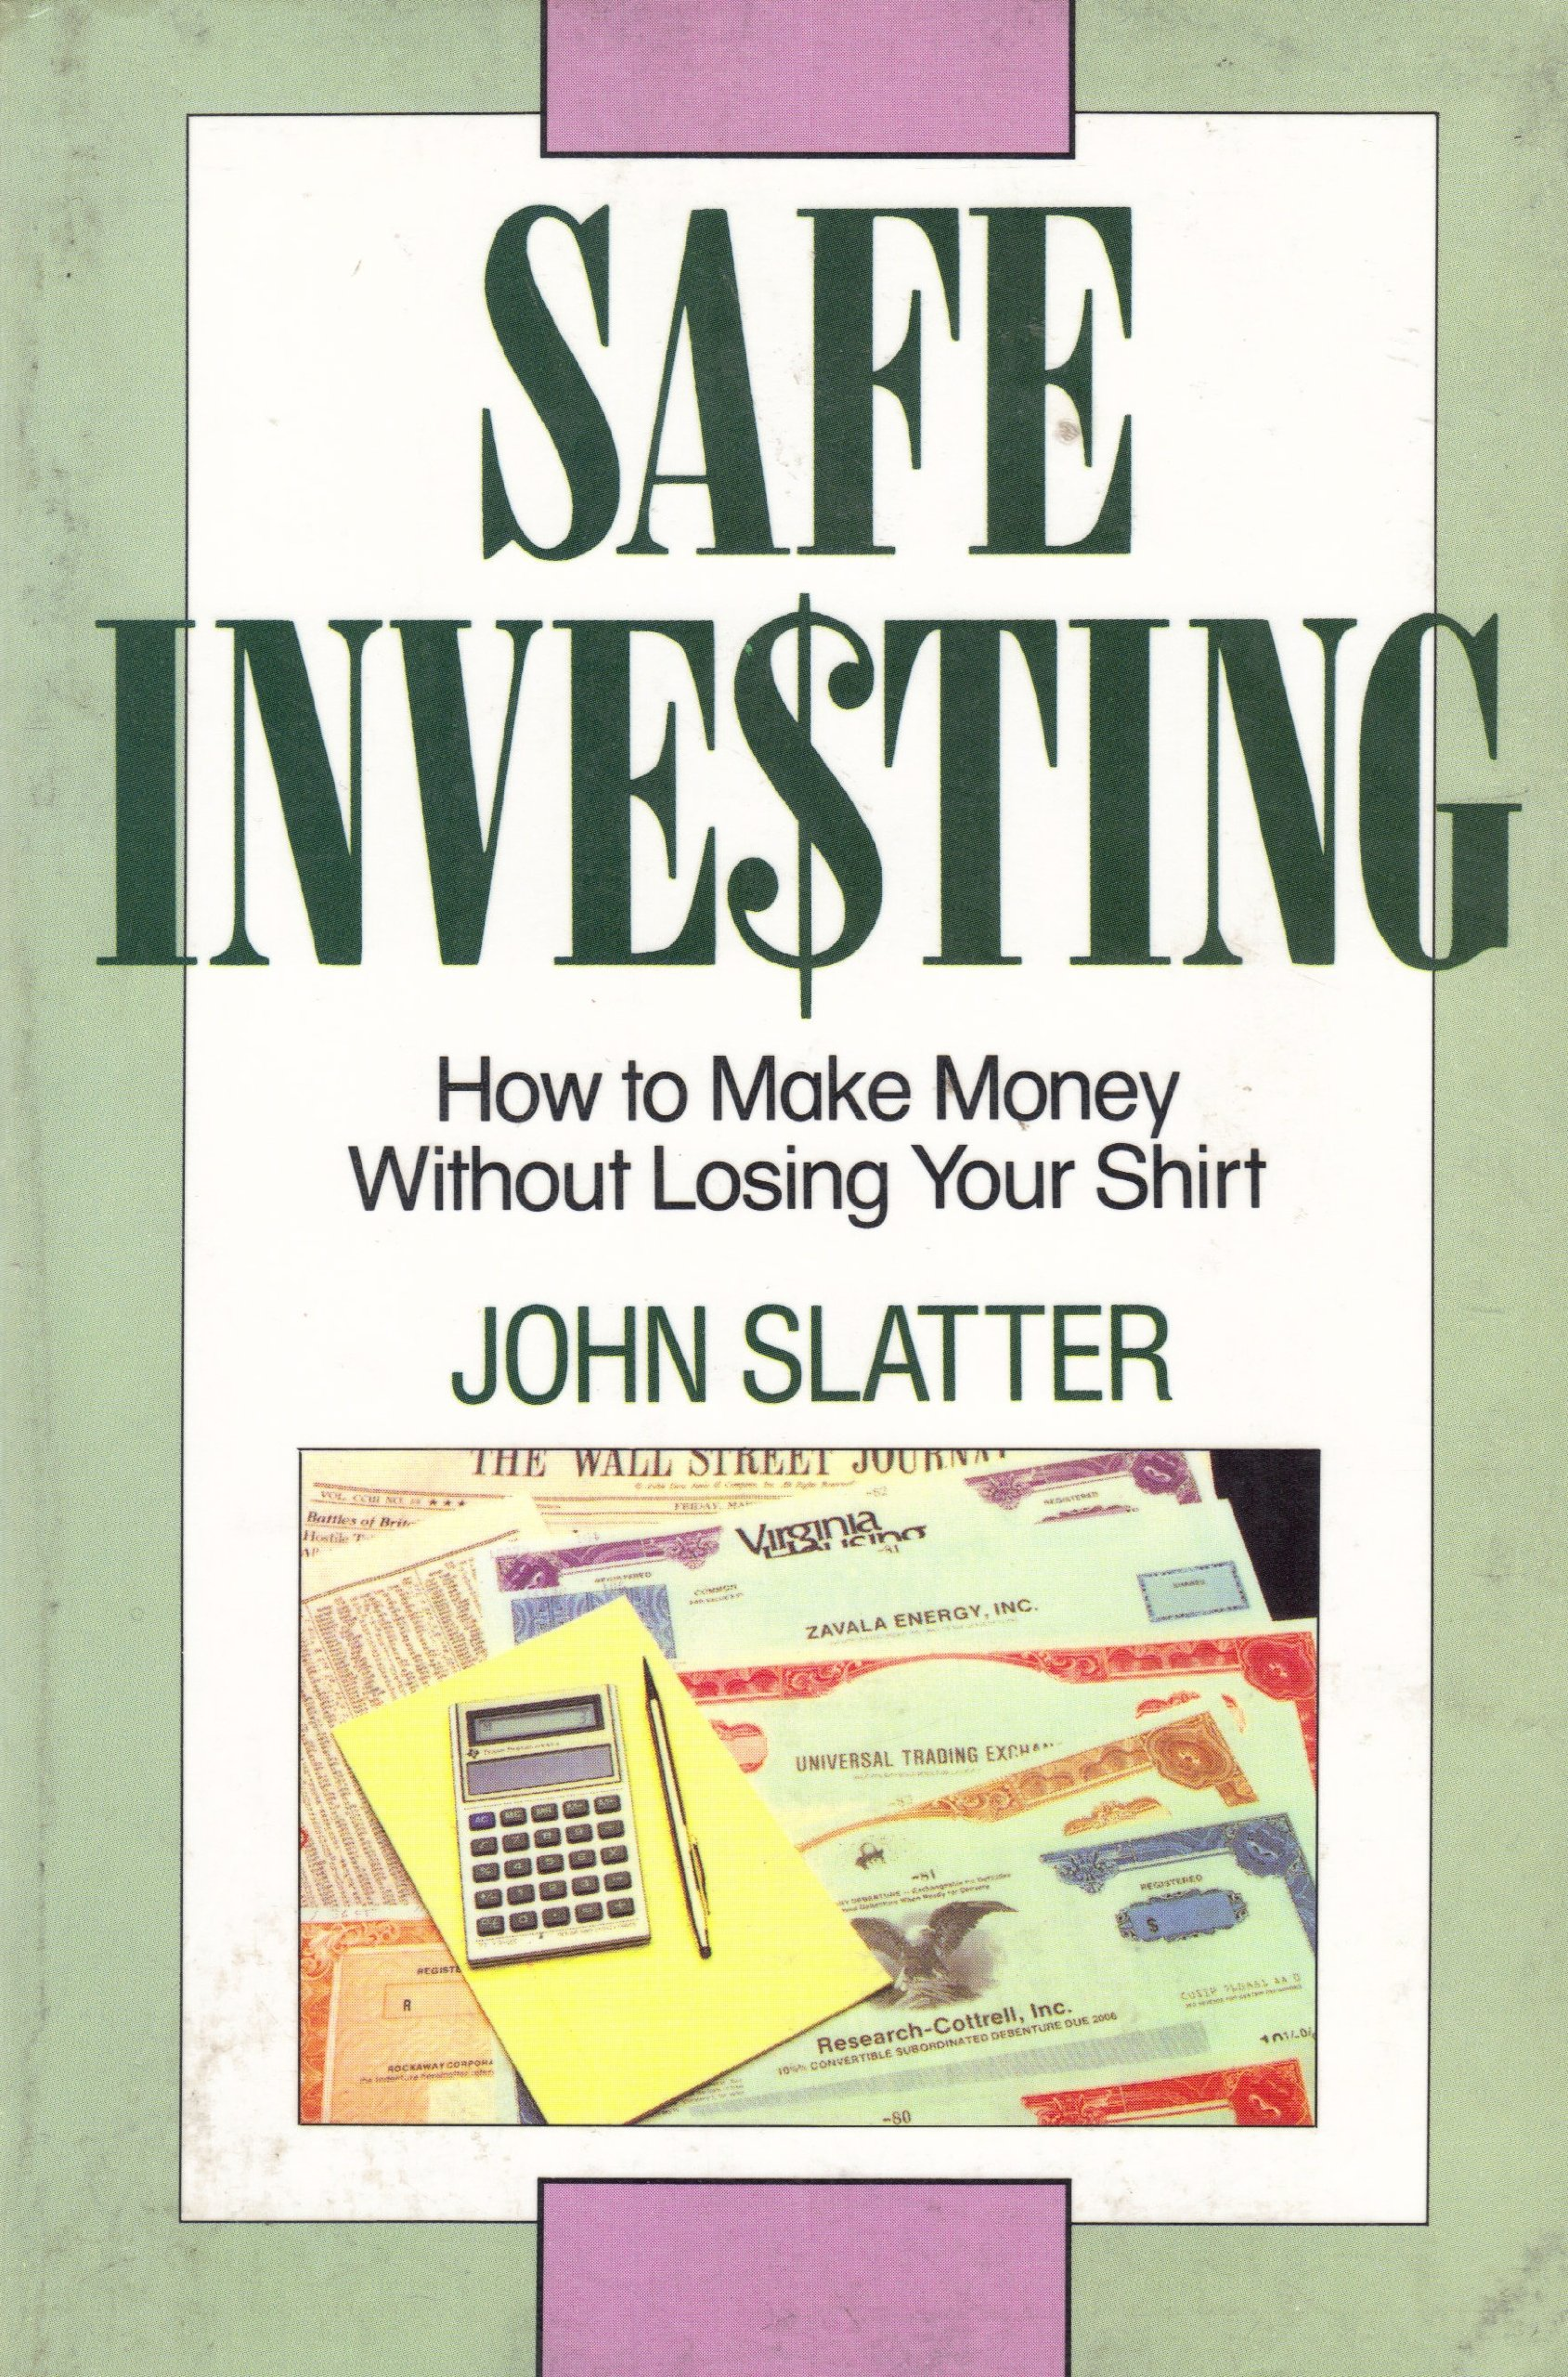 Safest investments to make money sanlam collective investments